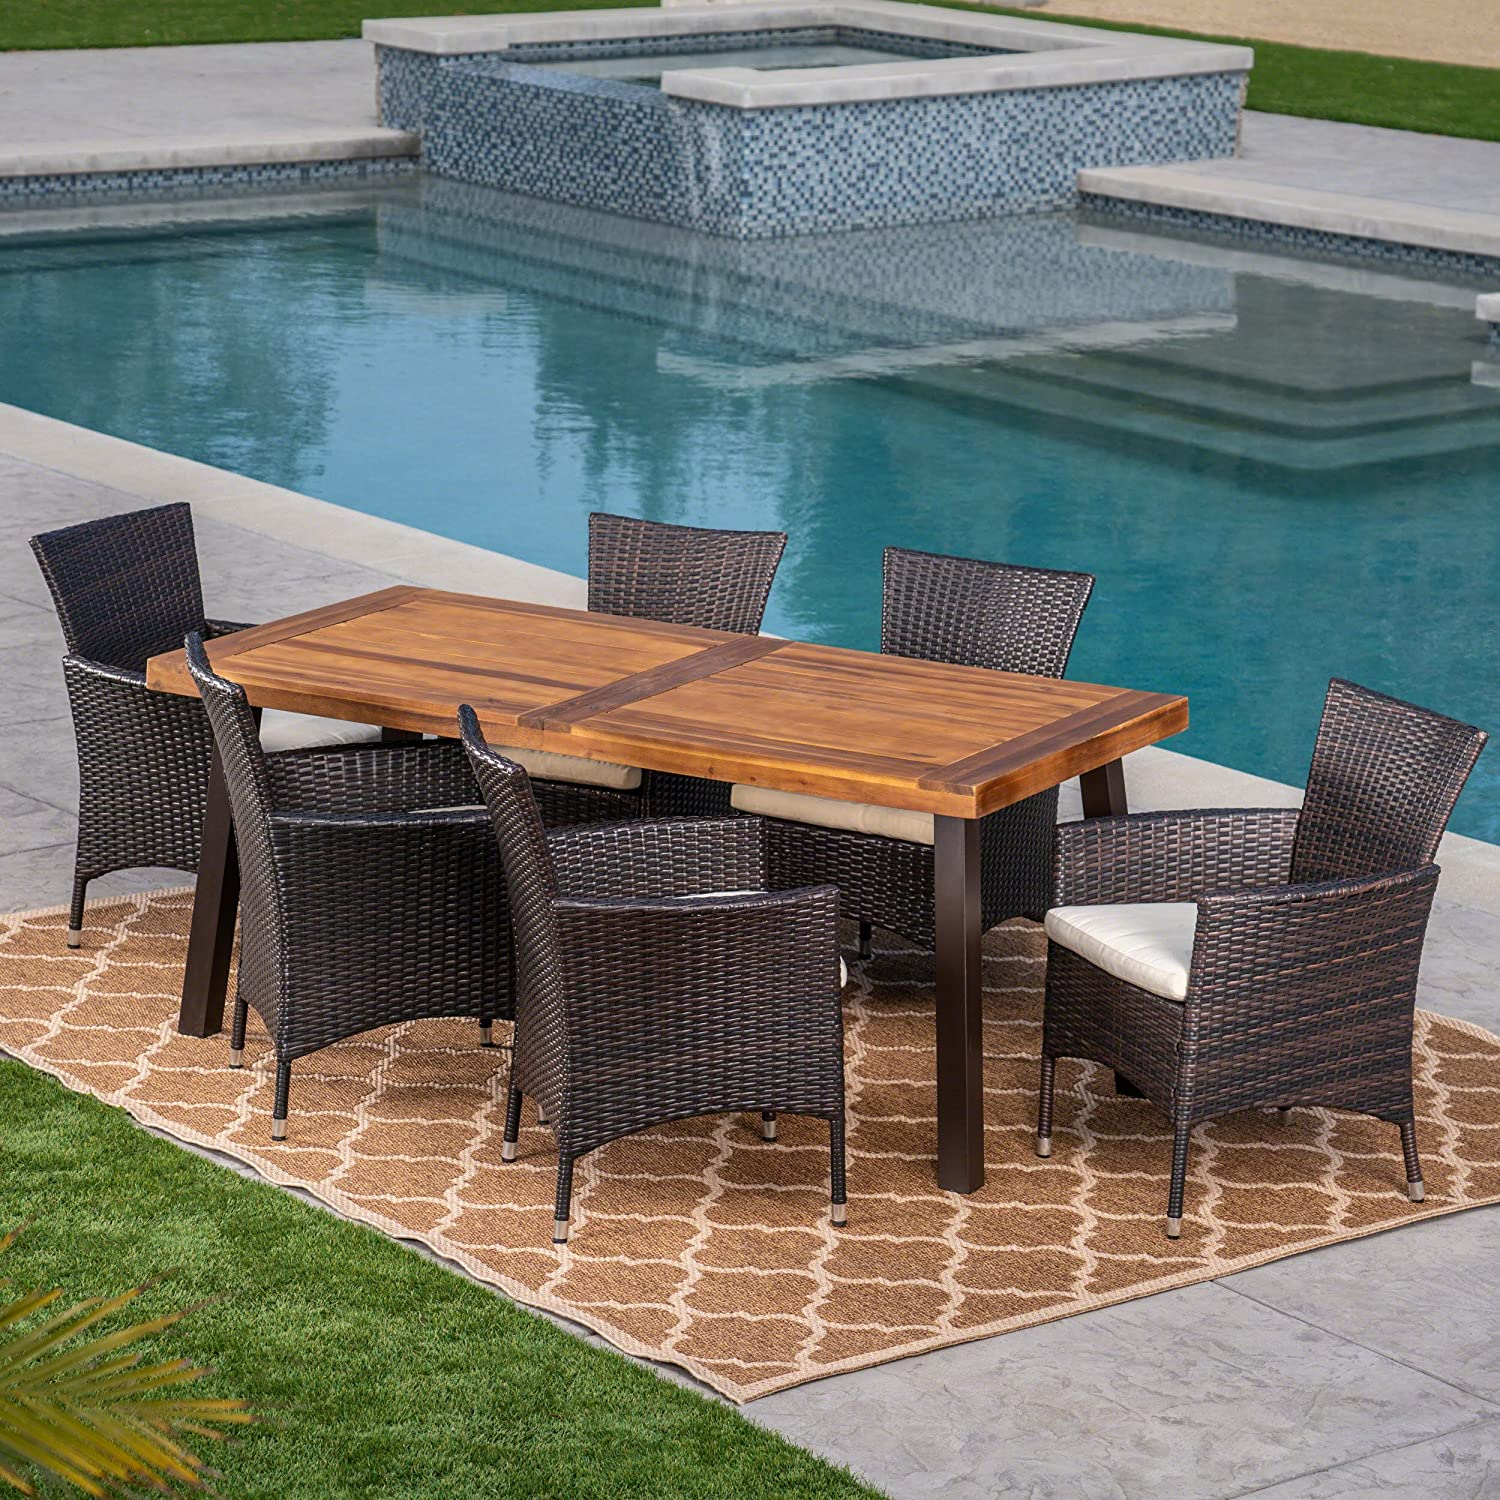 Christopher Knight Home Randy Outdoor 7-Piece Acacia Wood and Wicker Dining Set with Cushions Teak Finish in Multibrown Beige, Rustic Metal